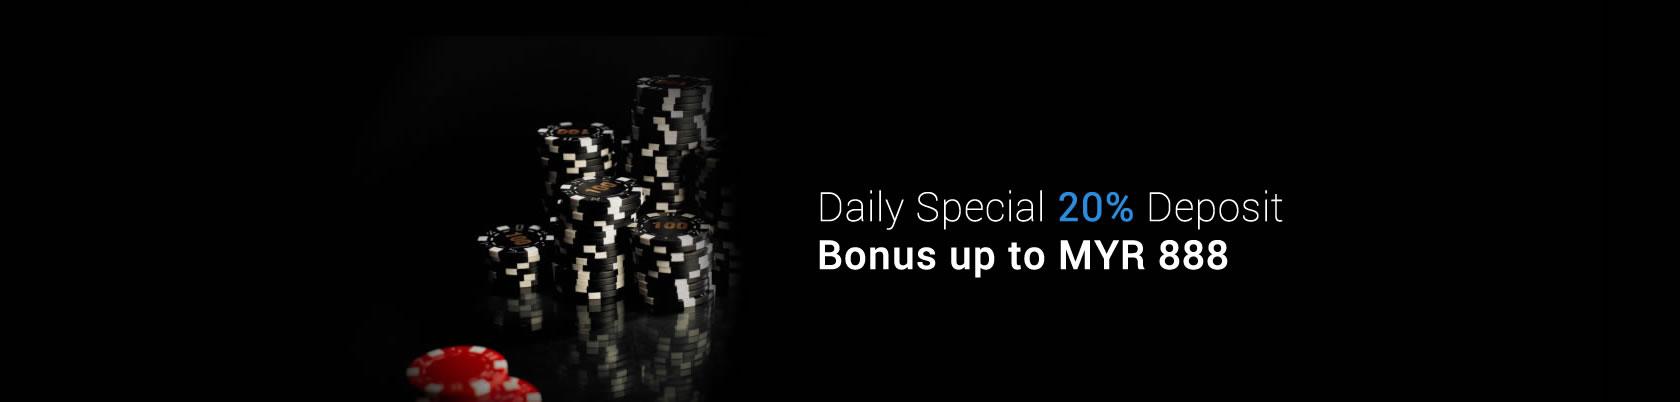 7Luck88 Daily Special 20% Deposit Bonus up to MYR 888